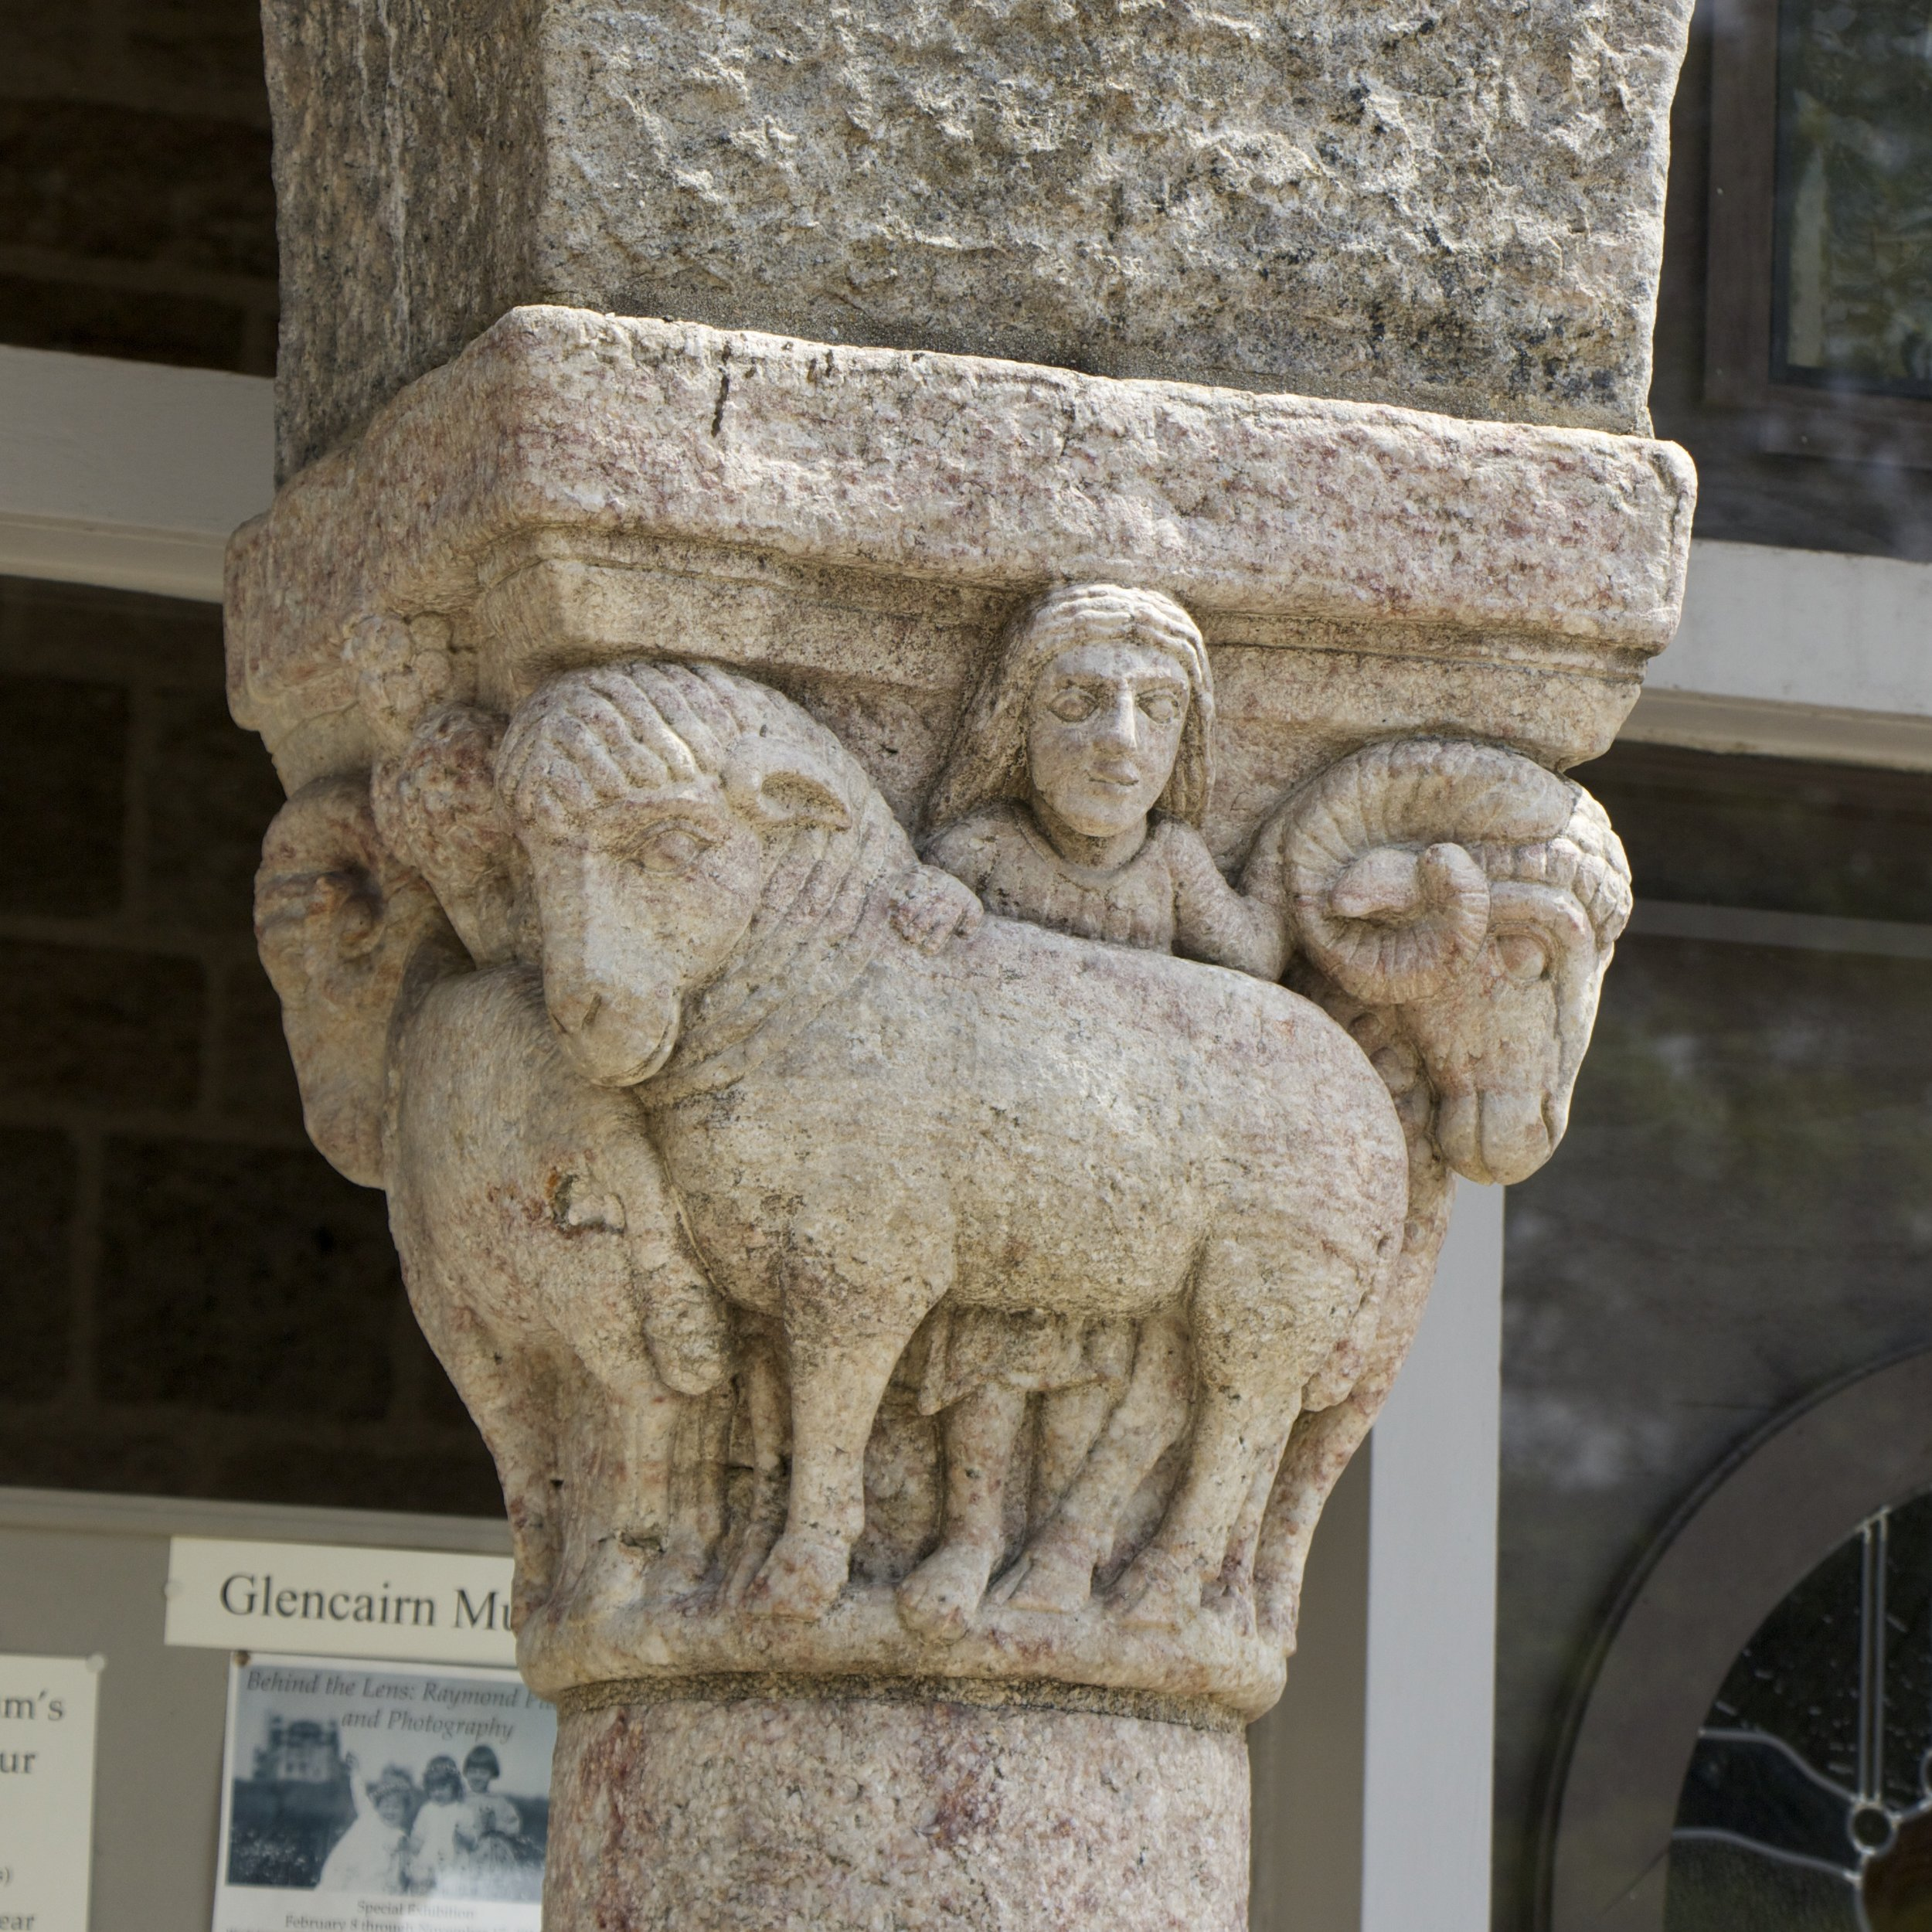 Figure 9: This capital, which helps support the roof of Glencairn's north porch, includes an image of a child.